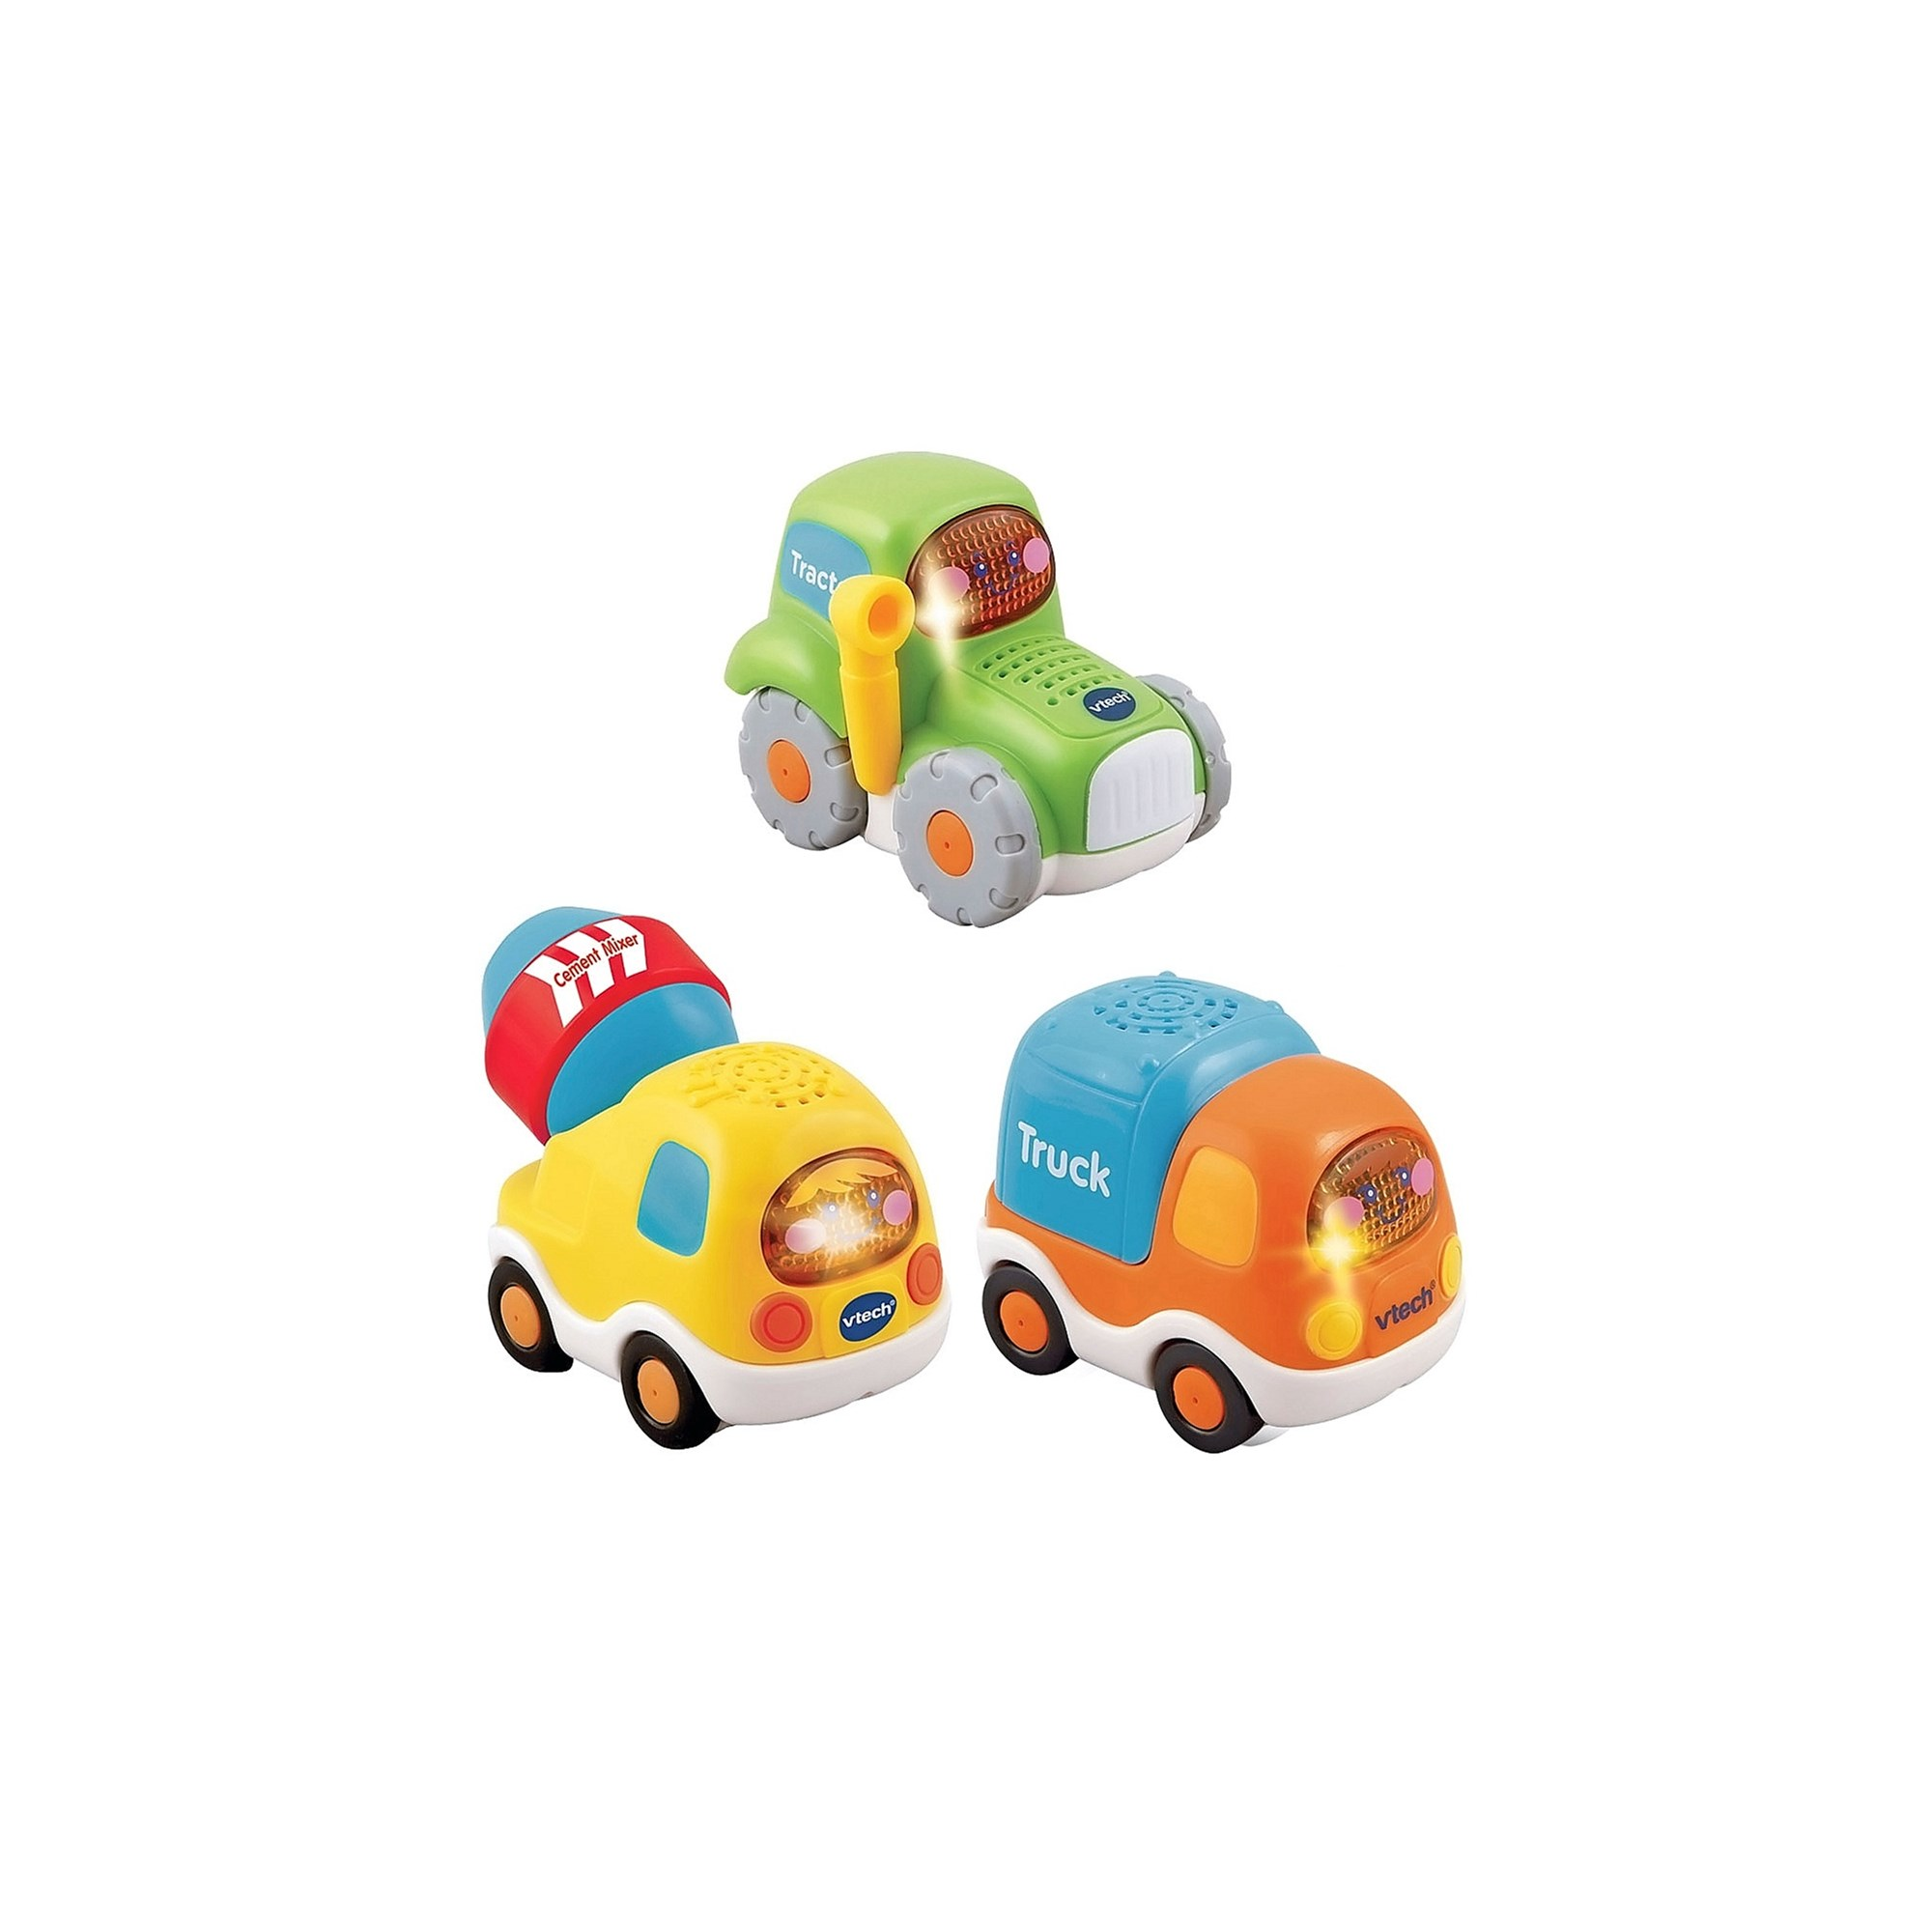 VTech TootToot Drivers 3 Car Pack Construction